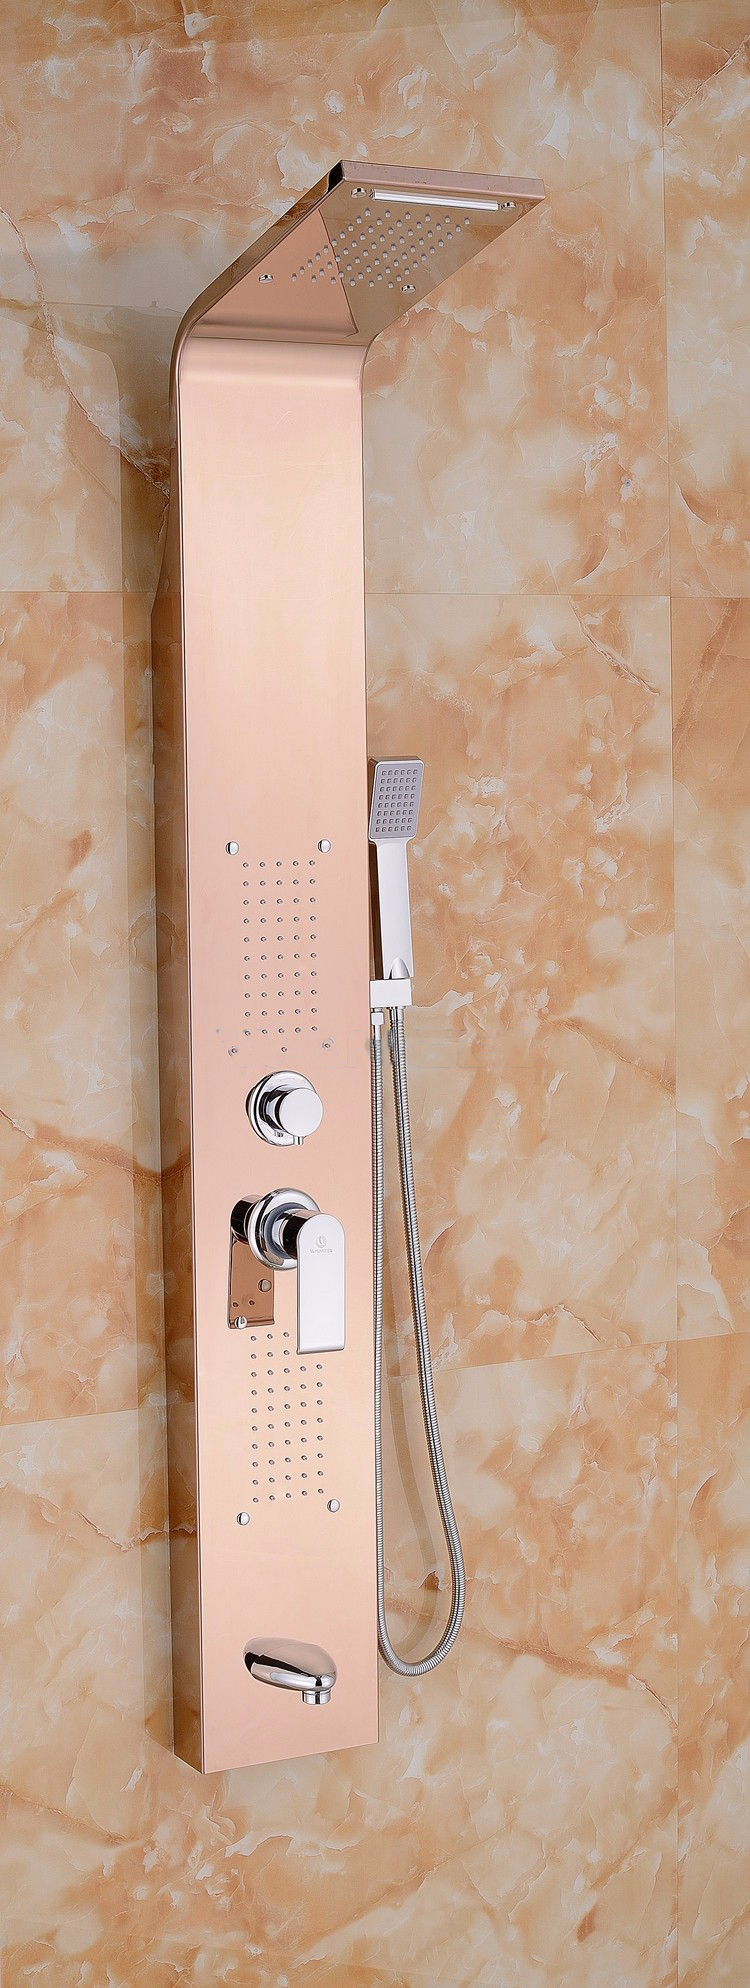 Installation Manual For Pulsating Massage Thermostatic Shower Shower Panel  In Champagne Gold Finish